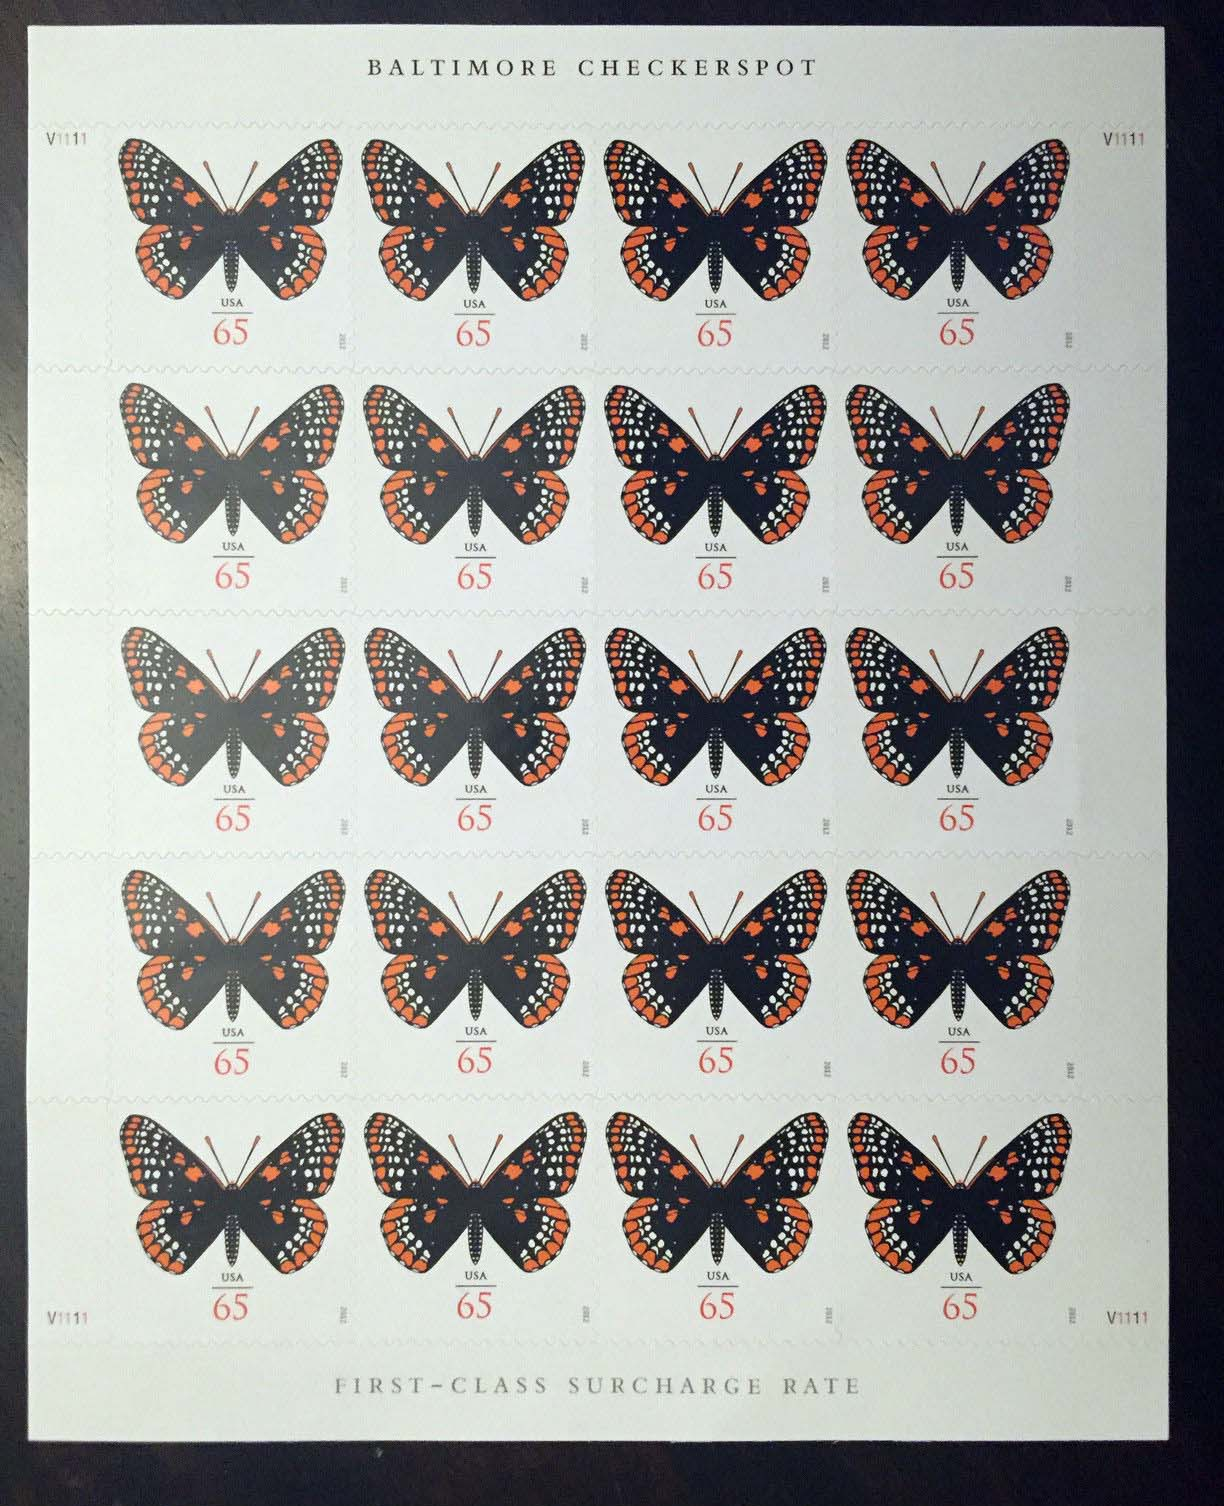 Scott #4603, sheet of 20, Butterfly.  See also #4736 (66 cents), #4859 (70 cents), #4999 (71 cents), #5136 (2 oz rate).